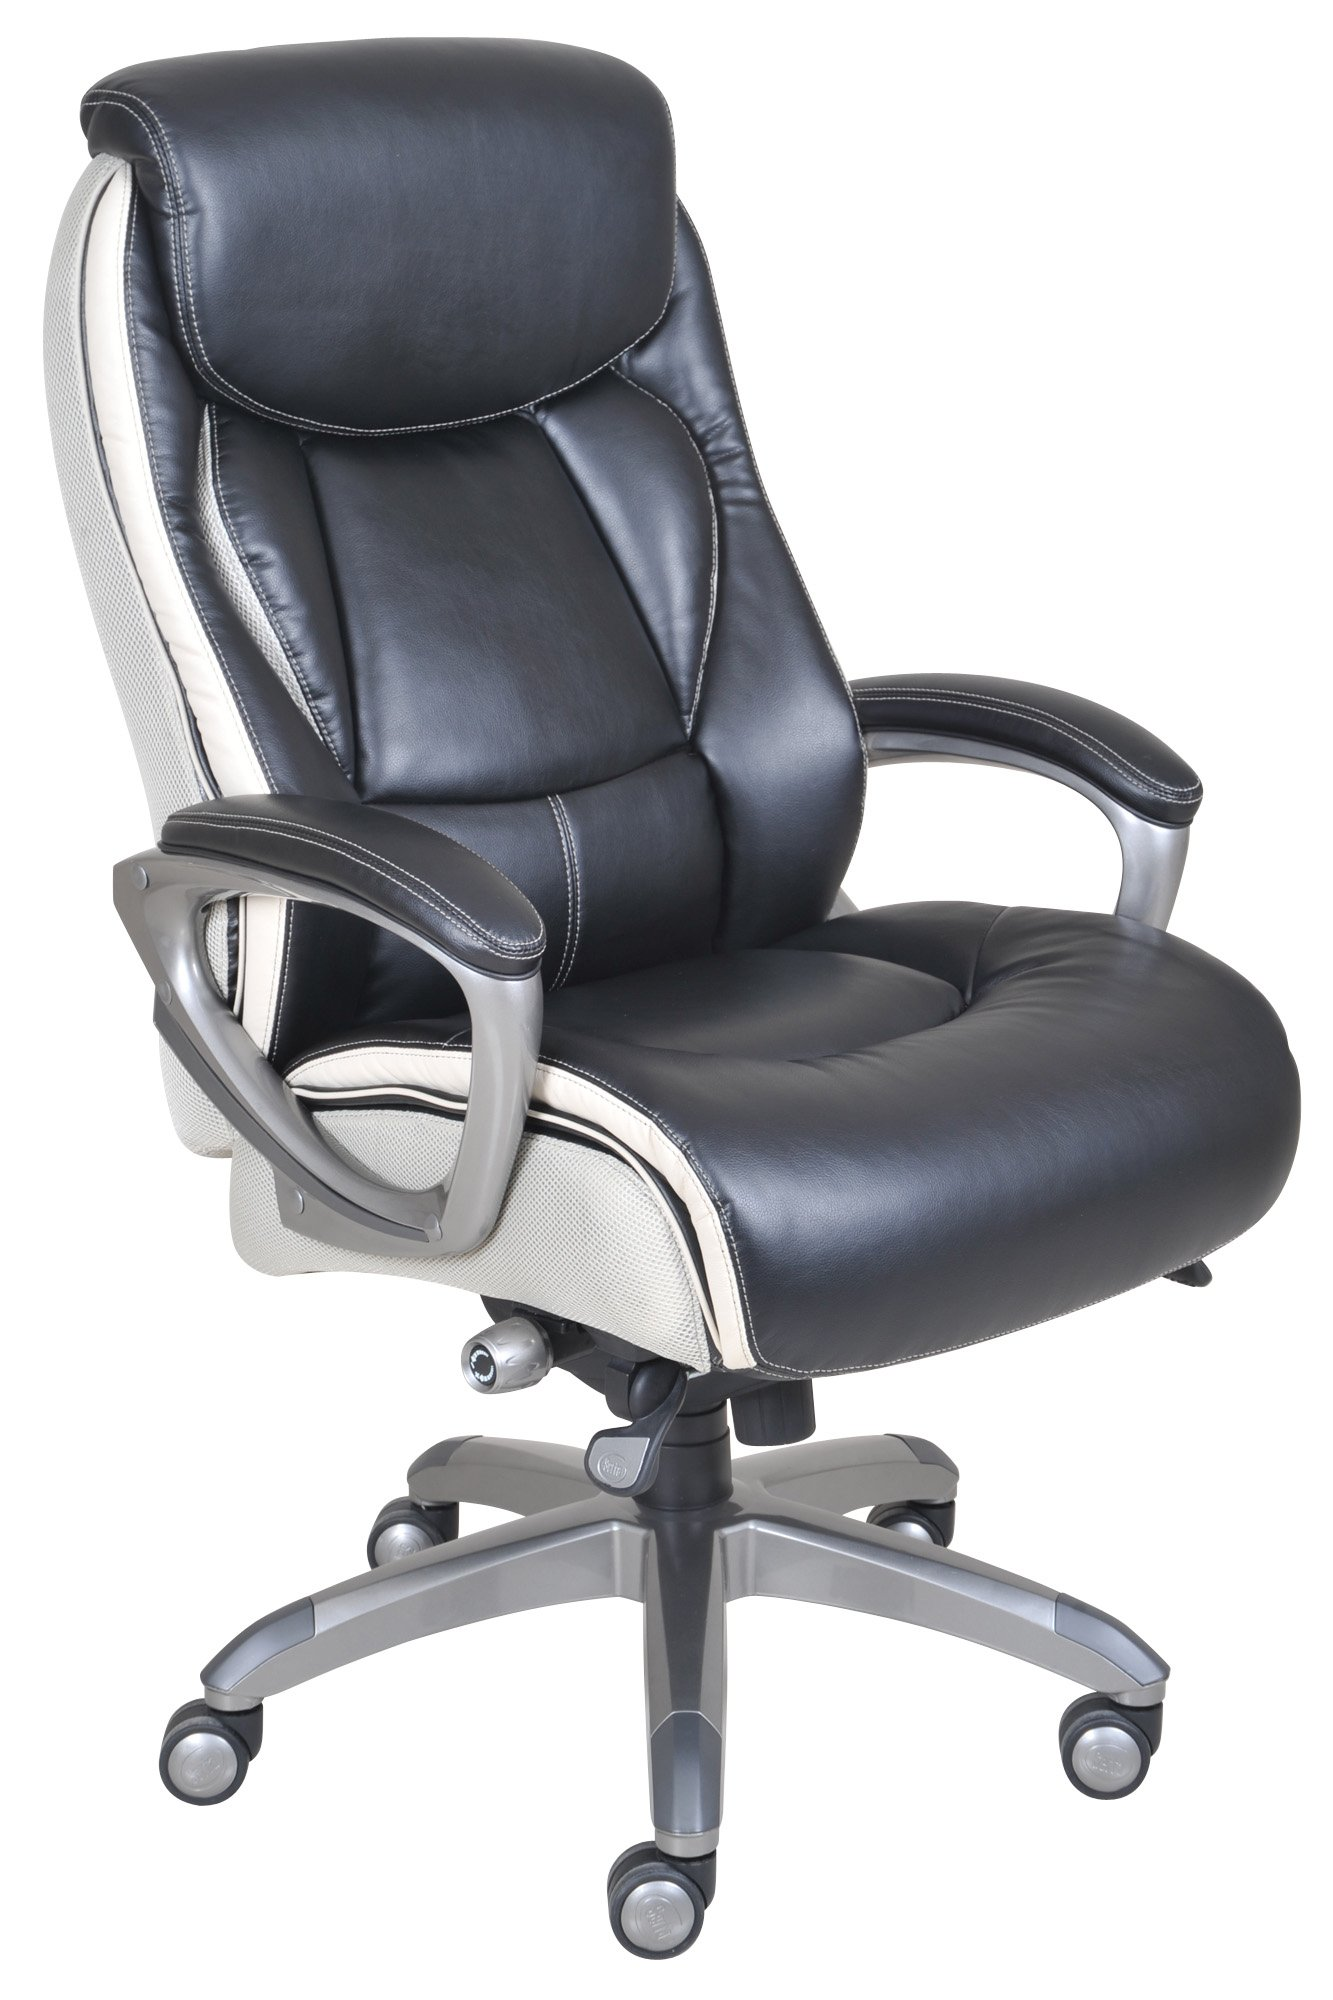 Serta Works Executive Office Chair with Smart Layers Technology, Black Bonded Leather and White Mesh